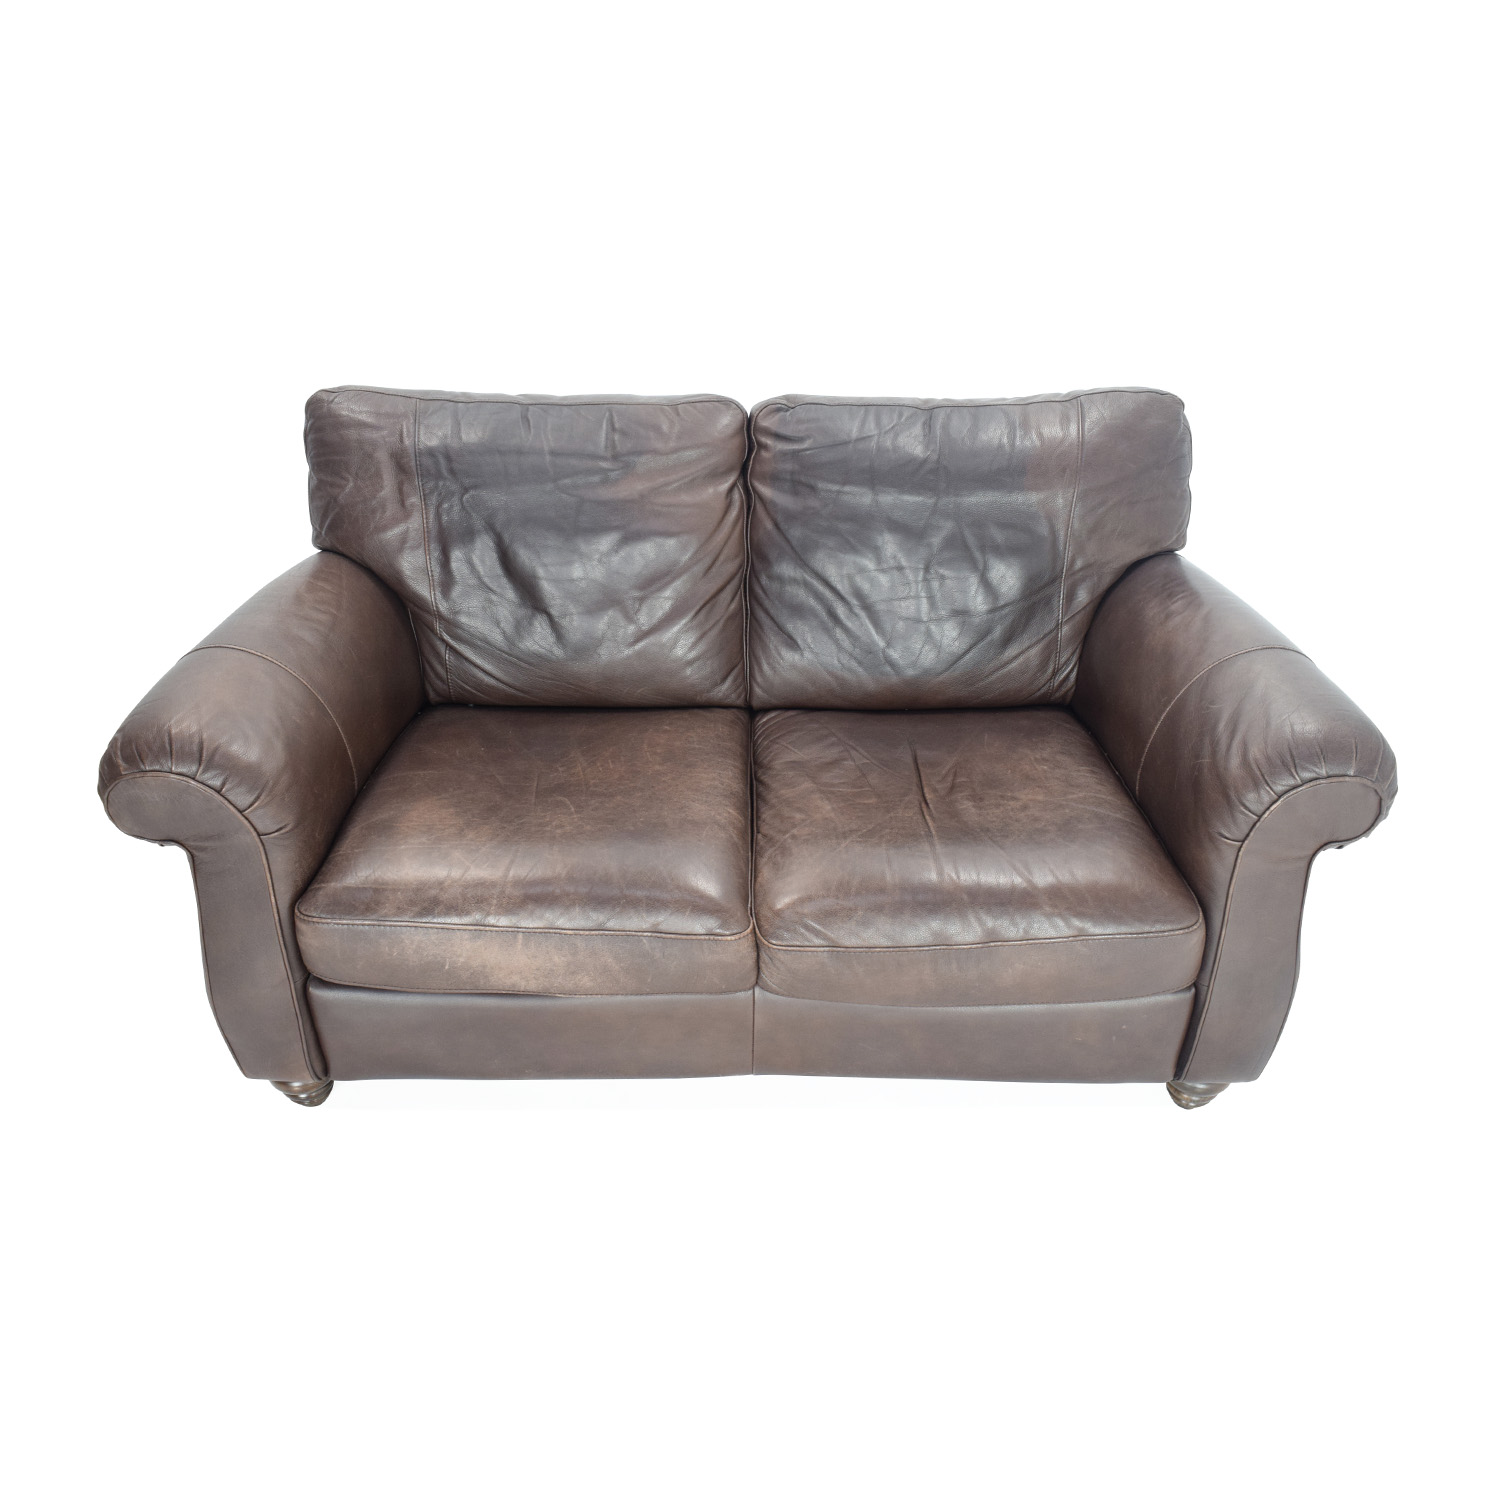 Leather Loveseat 60 Off Unknown Brand Grey Loveseat Sofas